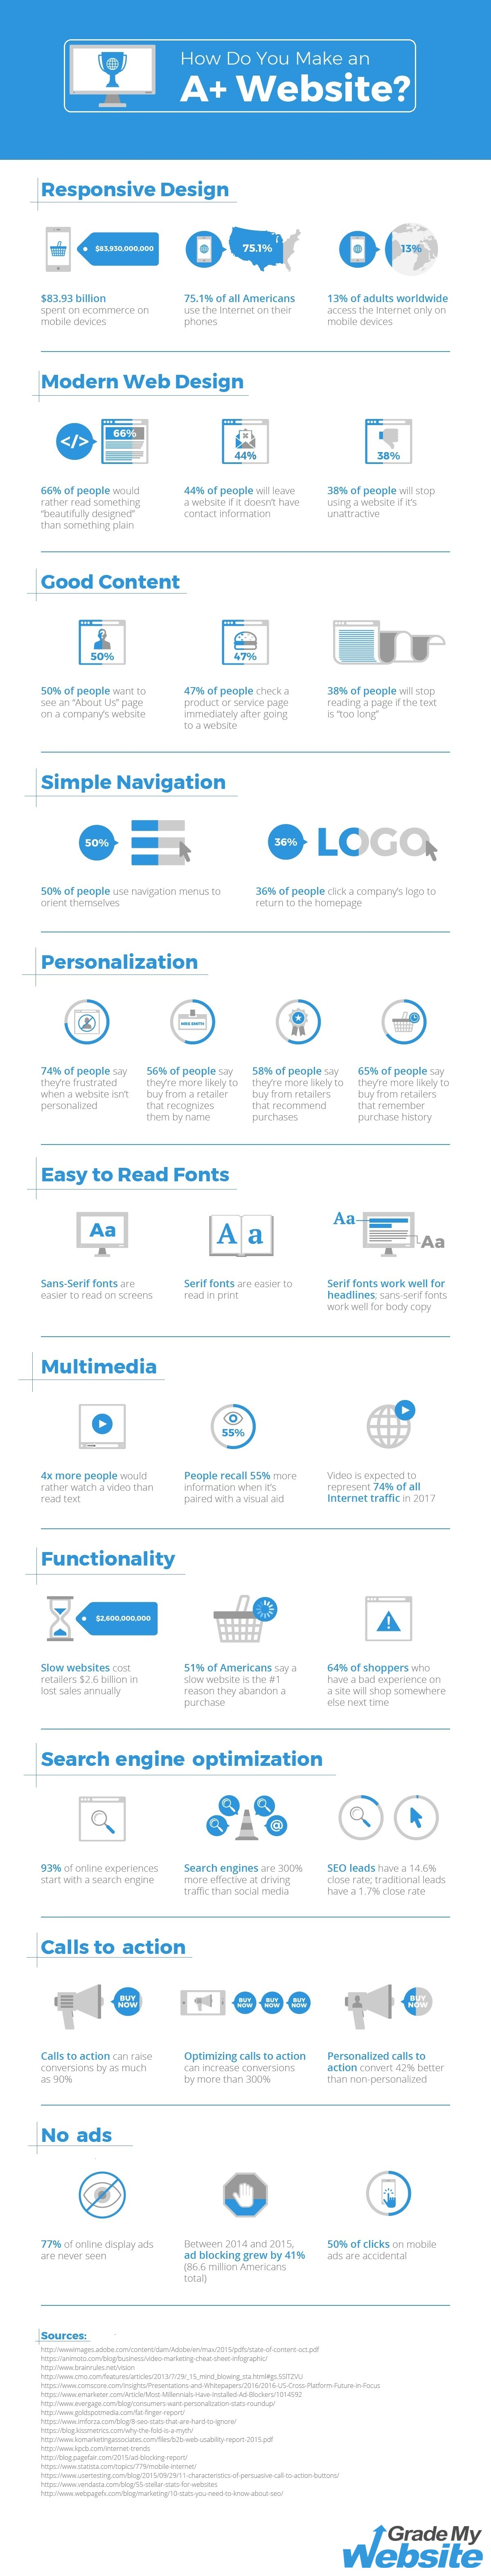 infographic-make-a-great-website